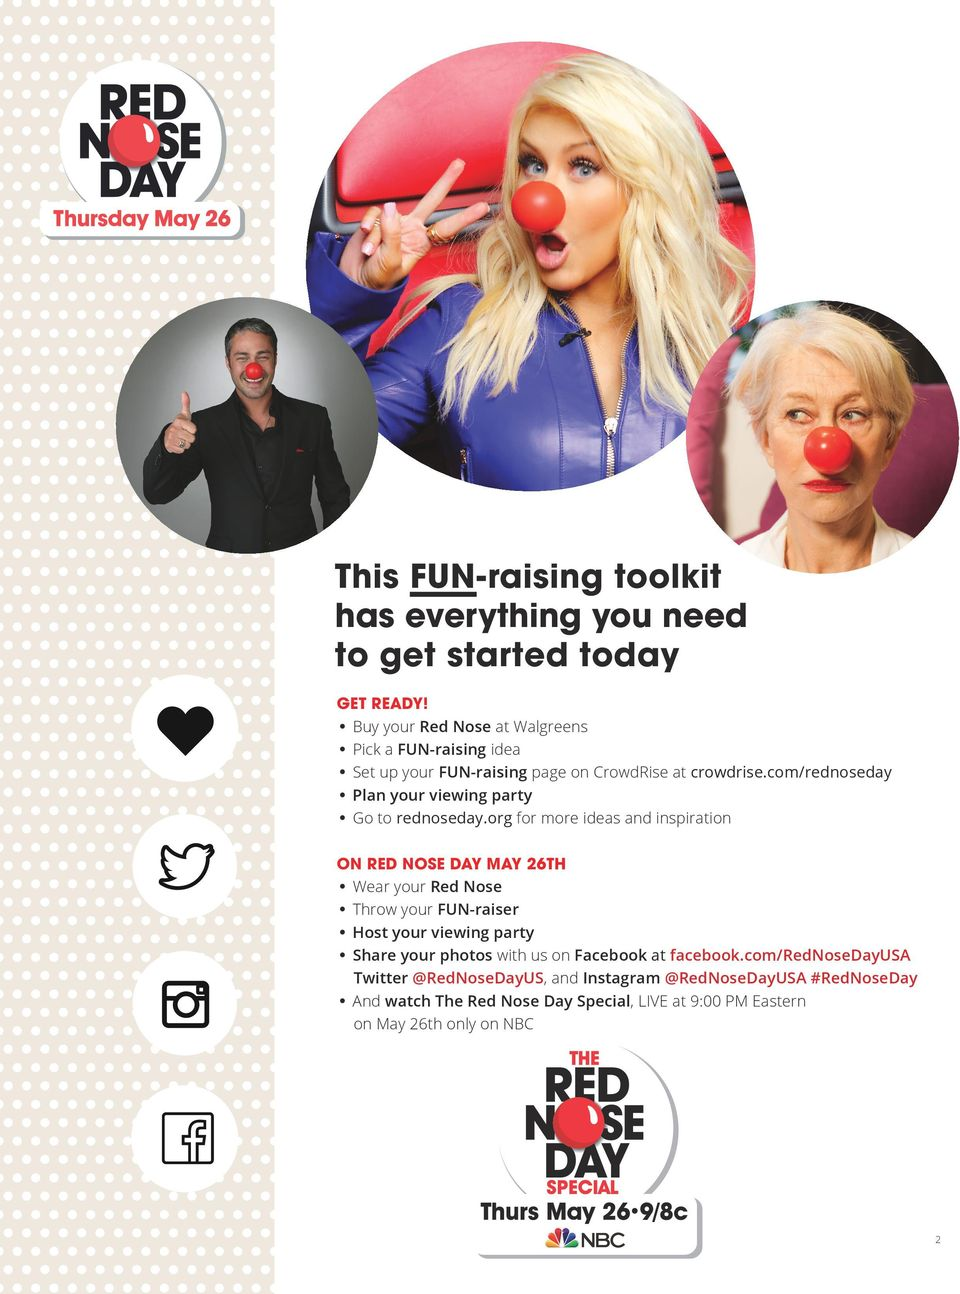 com/rednoseday Plan your viewing party Go to rednoseday.